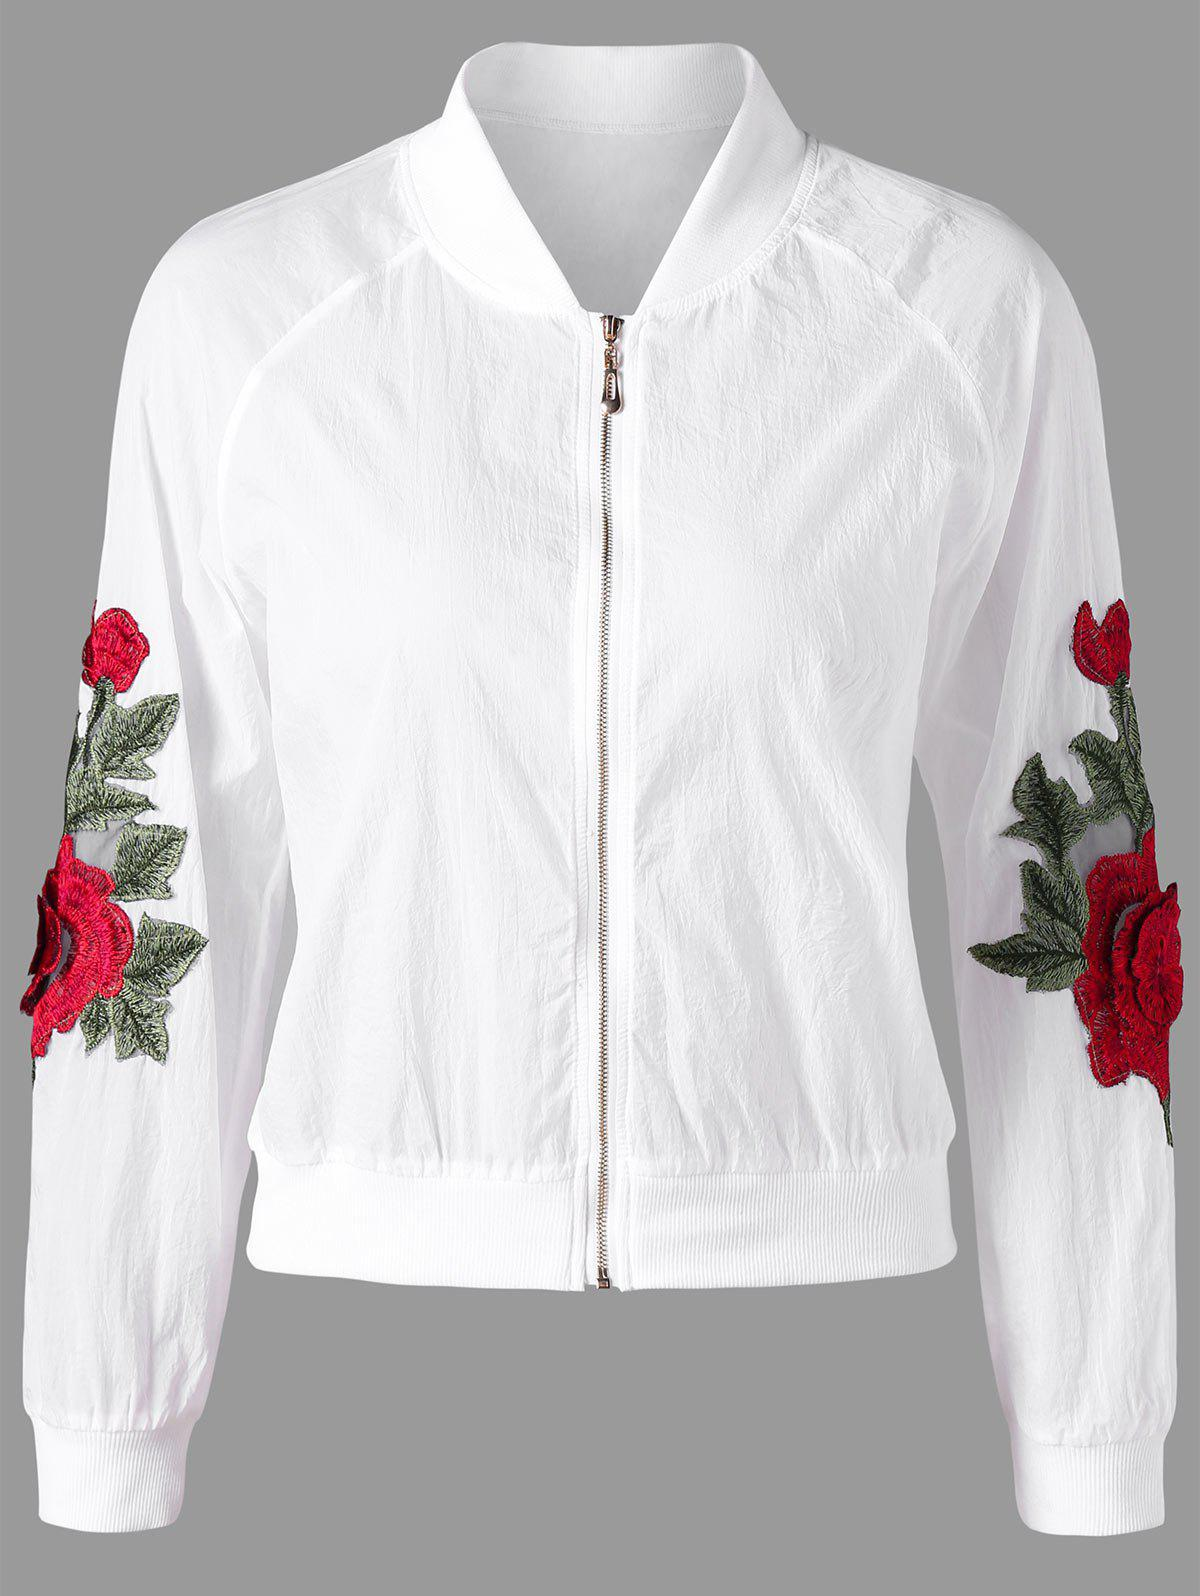 Floral Appliqued Zip Up Jacket - WHITE 2XL